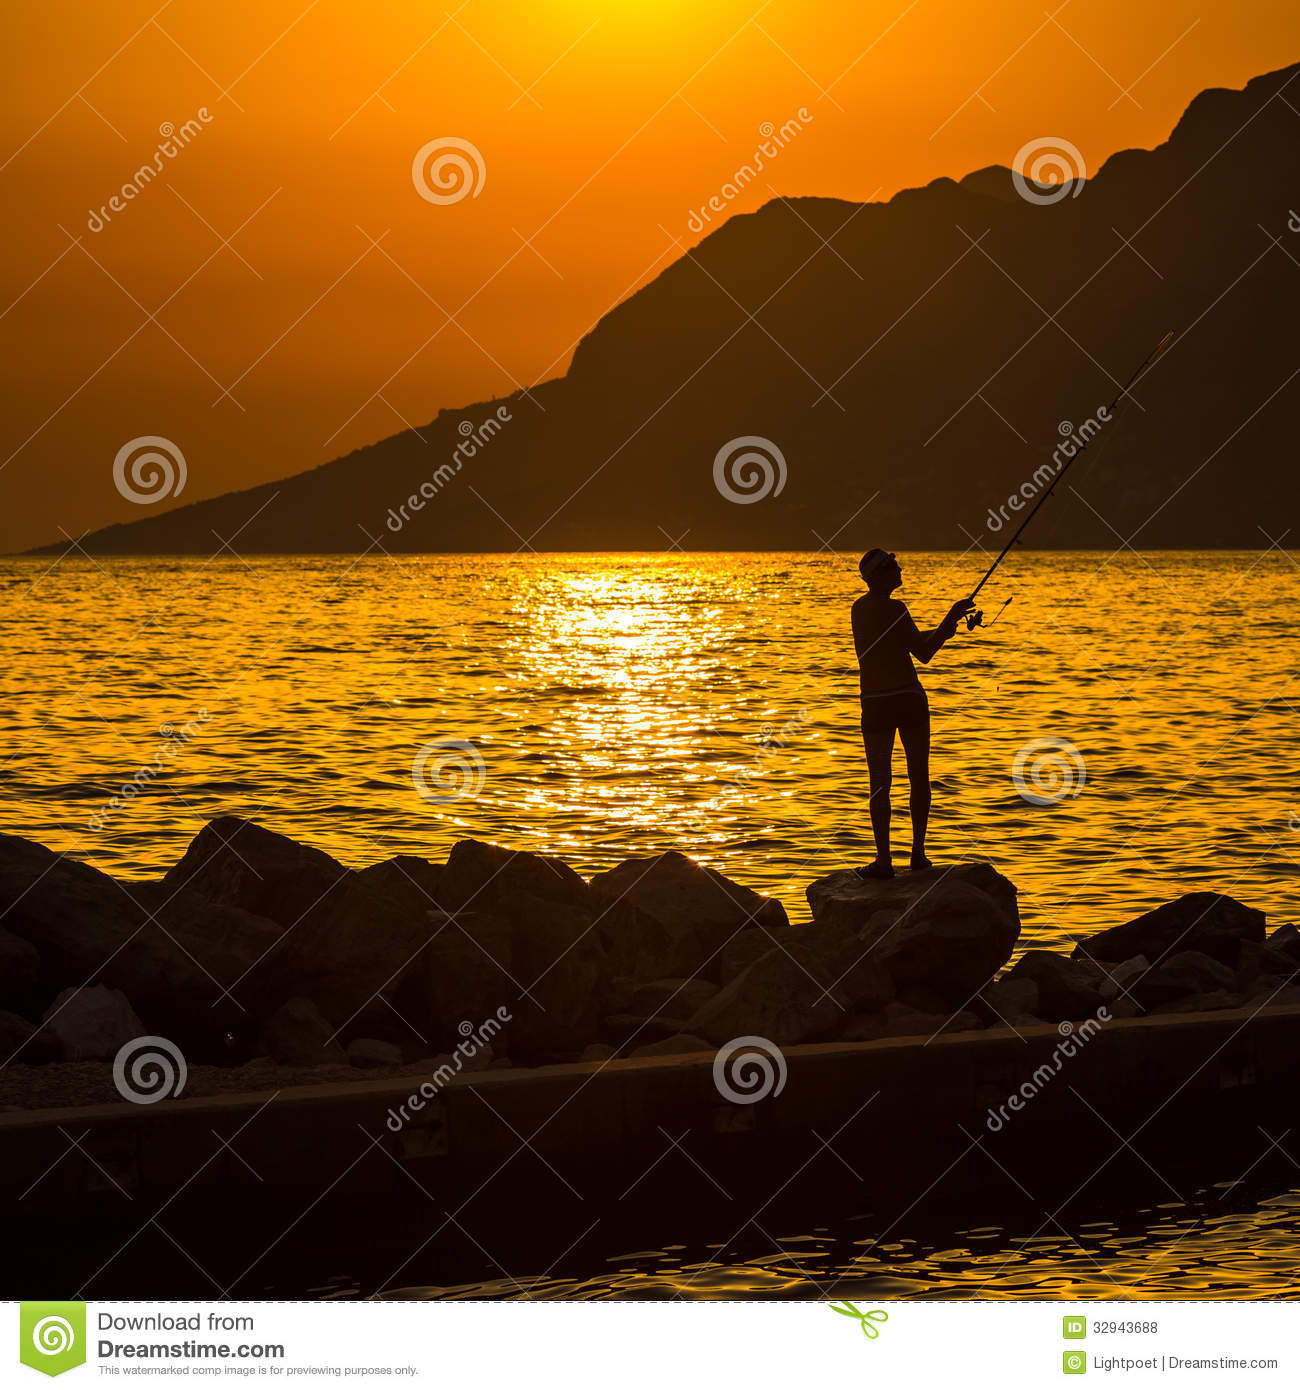 Beach Landscape With Fishermen: Fisherman's Silhouette On The Beach Stock Photo